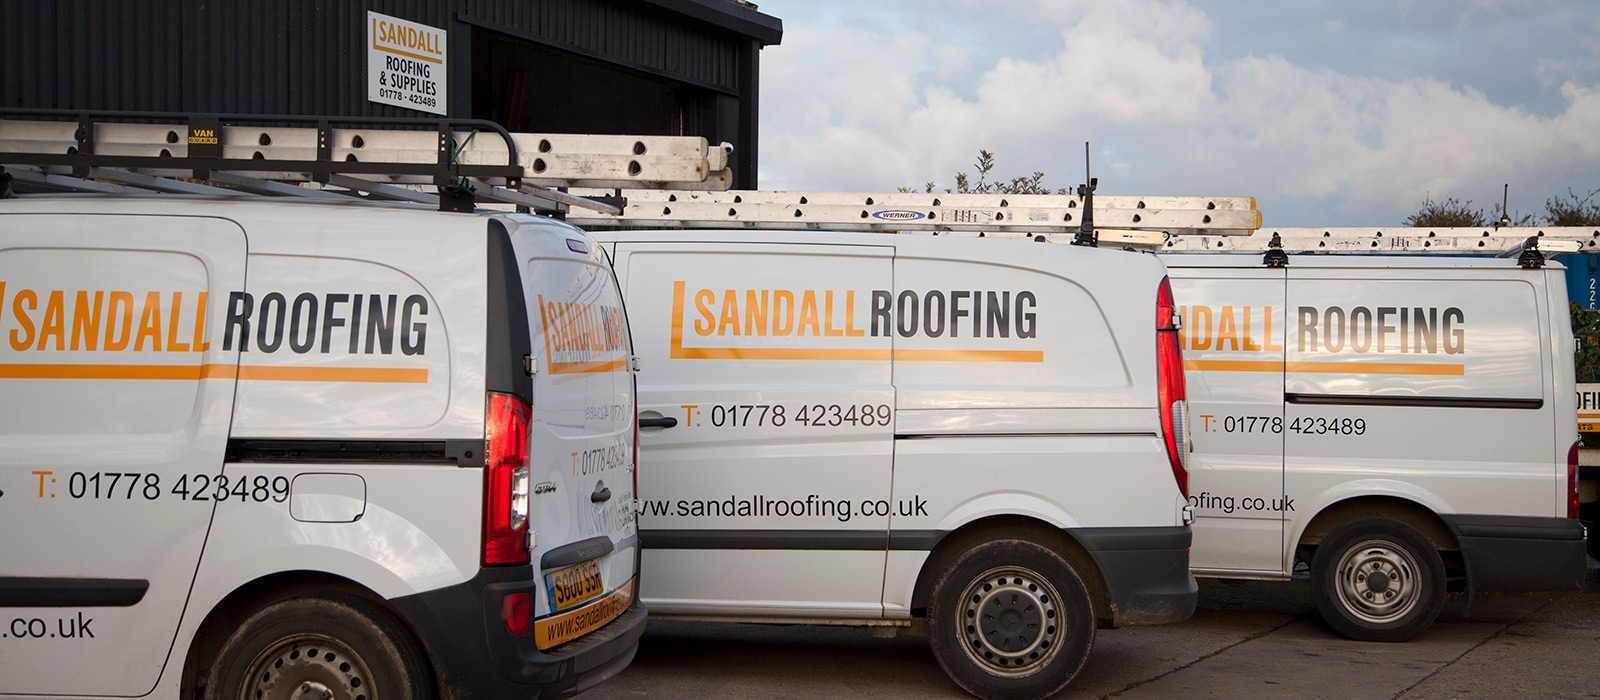 SANDALL ROOFING VANS VACANCIES